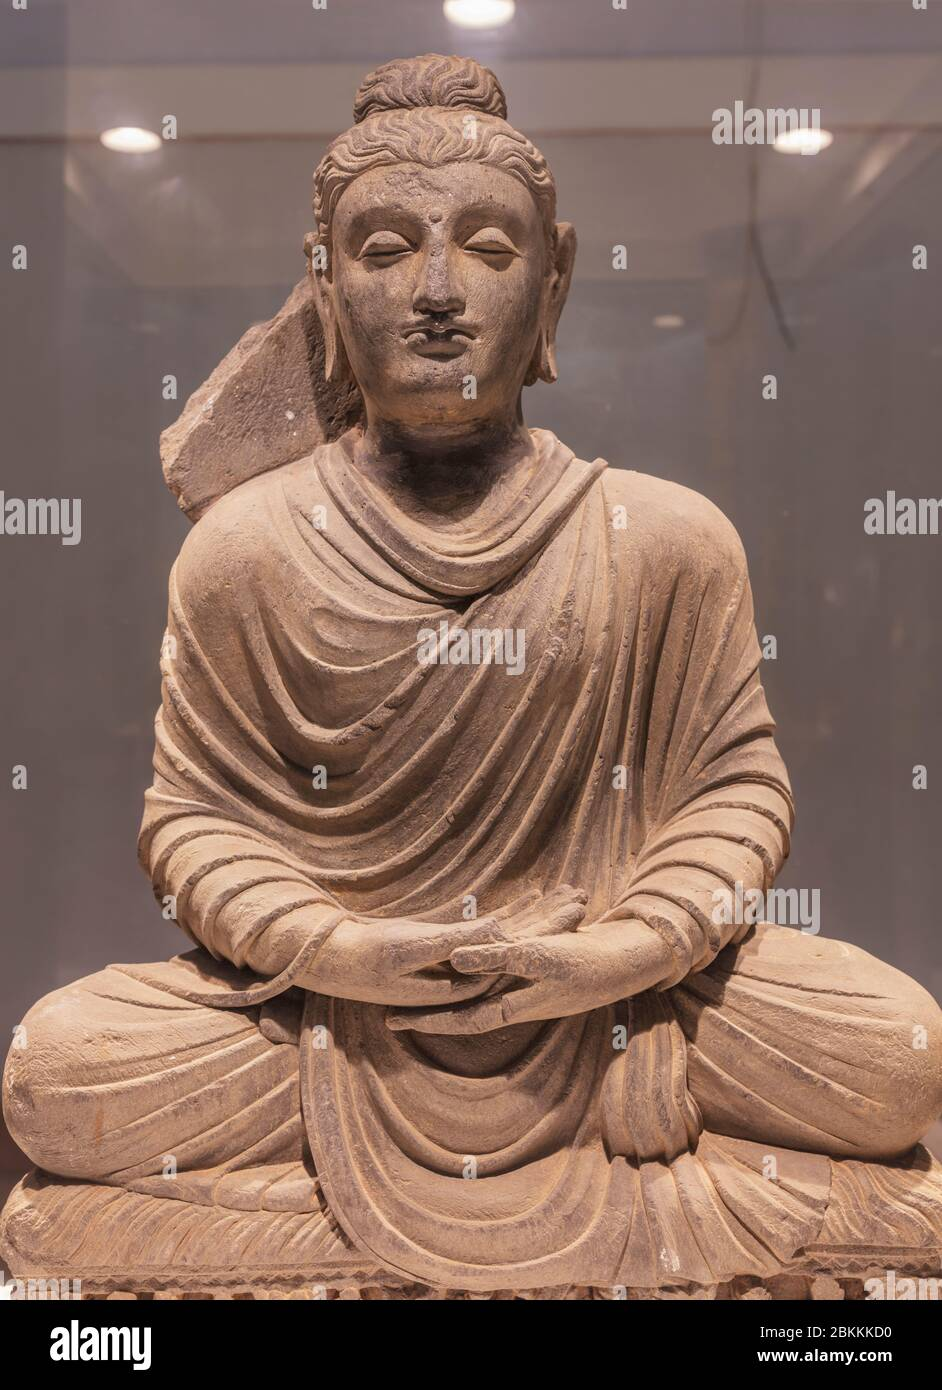 Gandharan High Resolution Stock Photography And Images Alamy